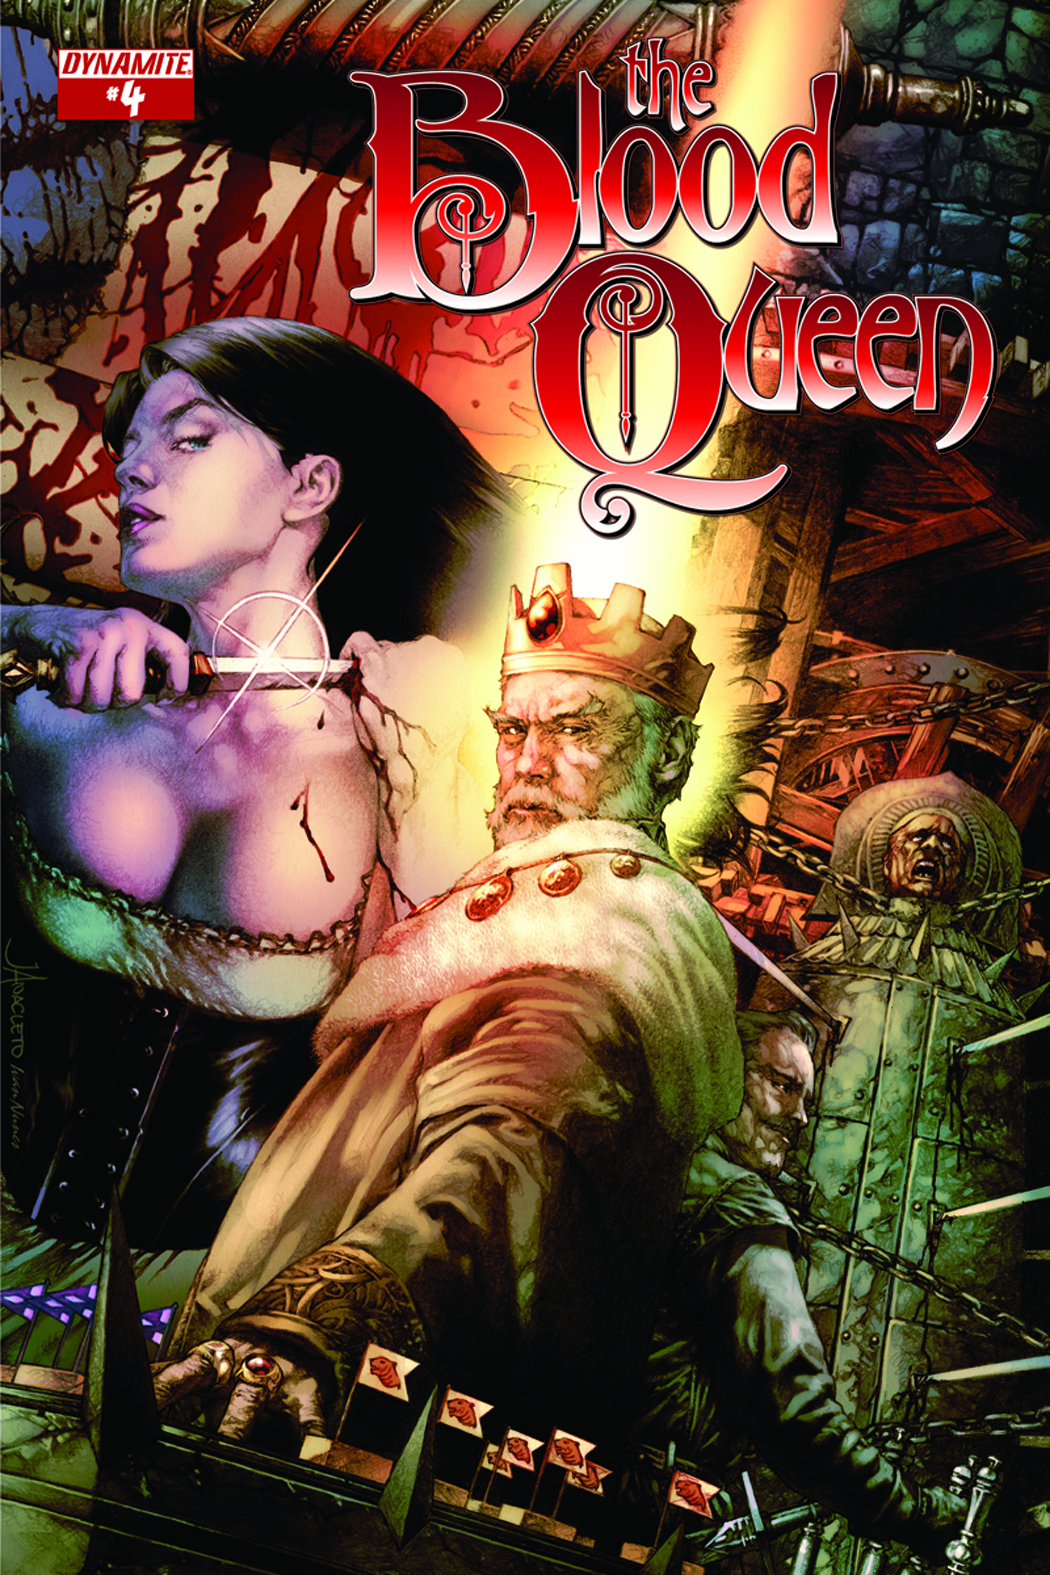 BLOOD QUEEN #4 CVR A ANACLETO